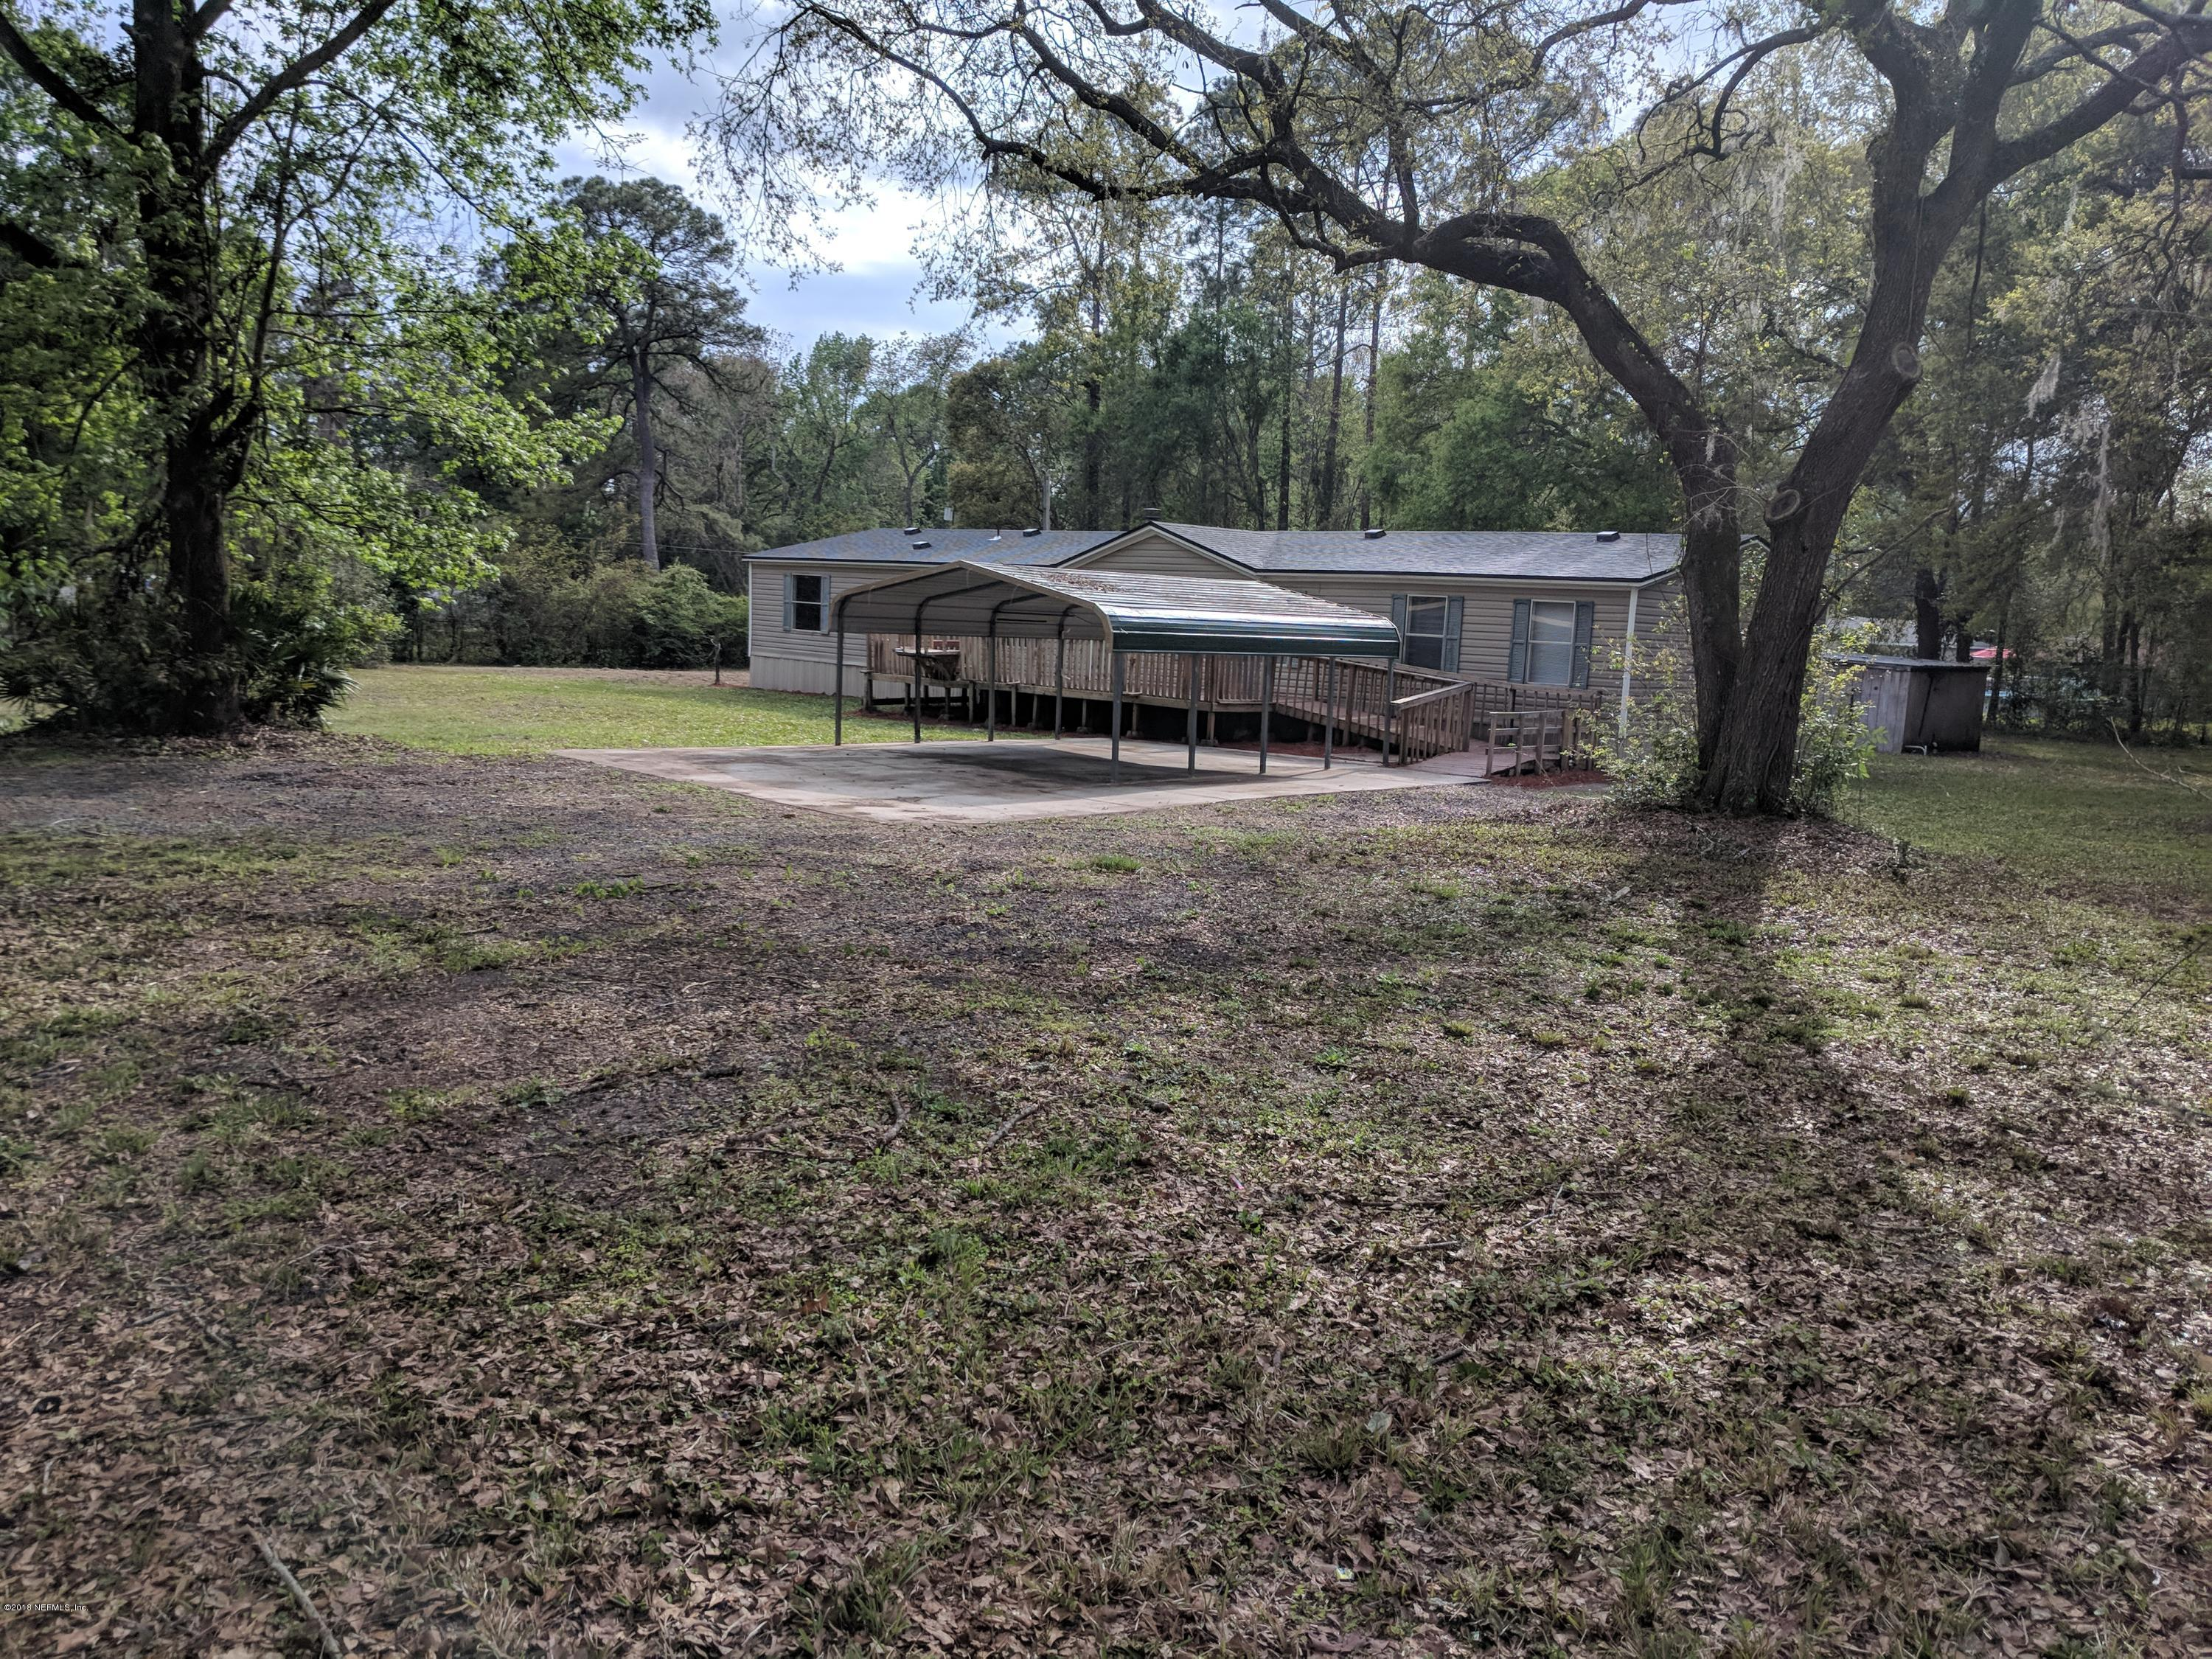 600 FORGOTTEN, JACKSONVILLE, FLORIDA 32221, 4 Bedrooms Bedrooms, ,2 BathroomsBathrooms,Residential - mobile home,For sale,FORGOTTEN,928145